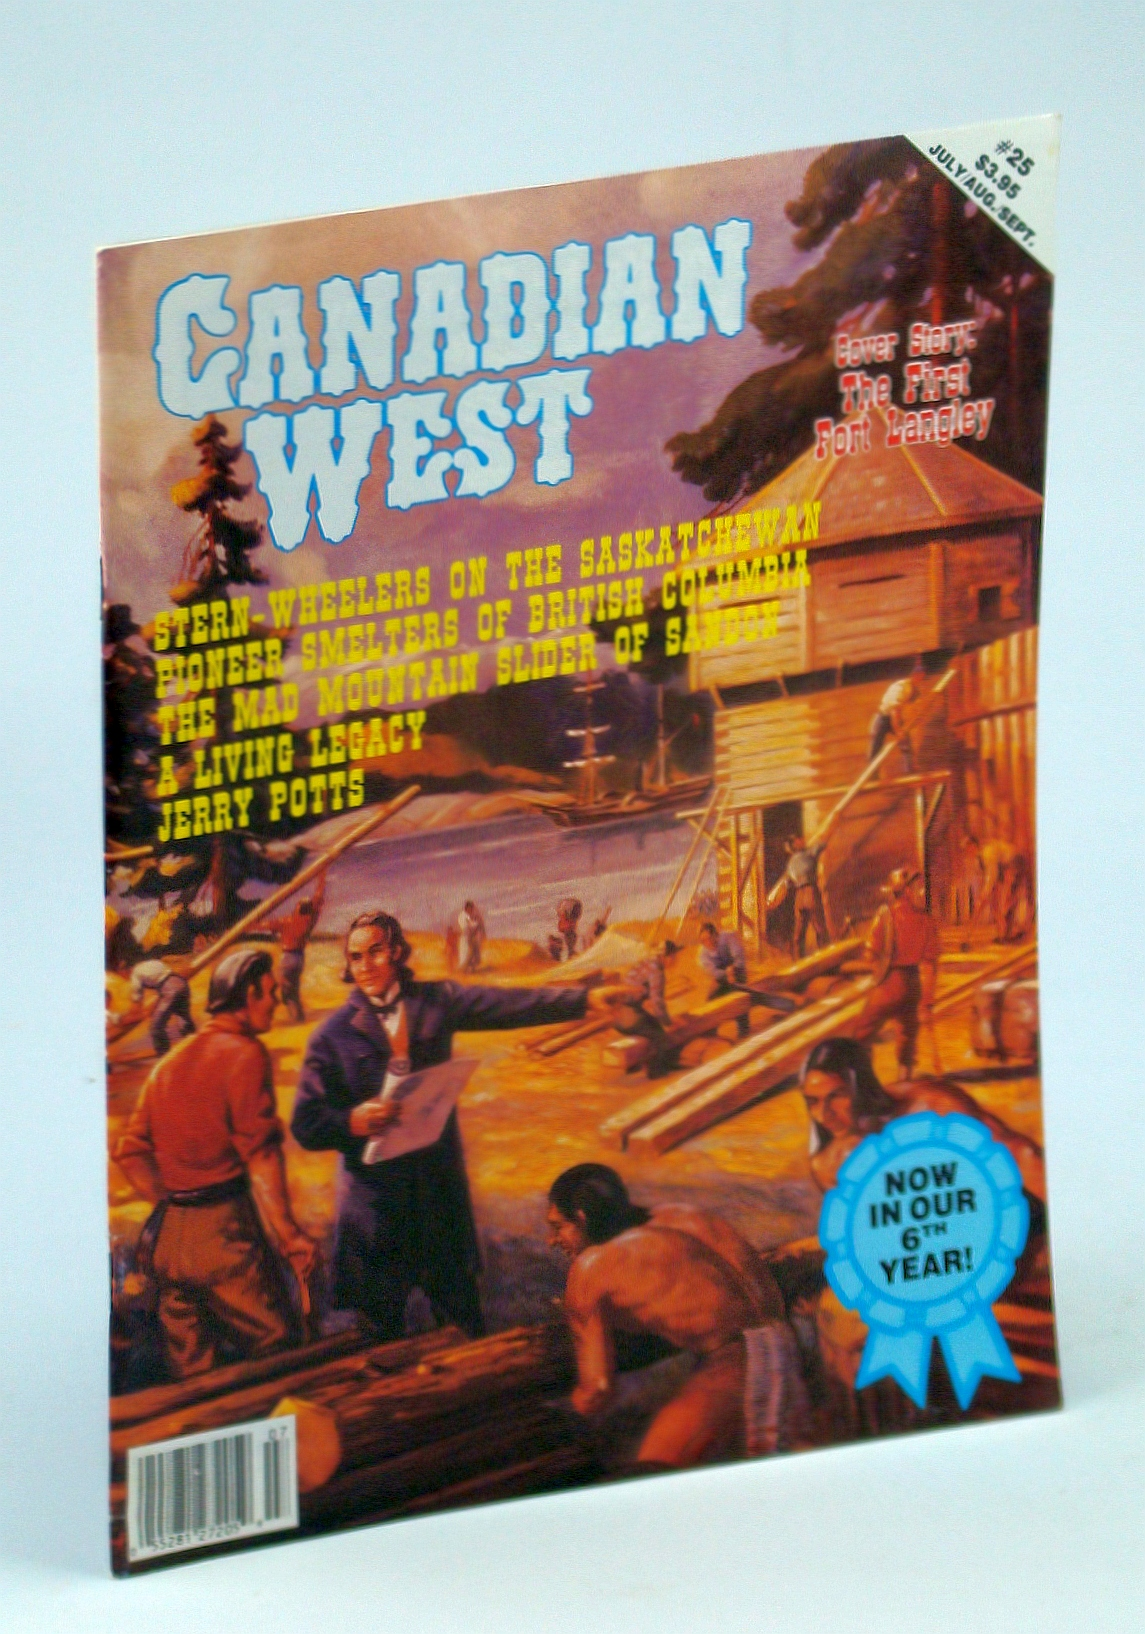 Image for Canadian West Magazine, Vol. 7, No. 3, Collector's #25 - July, August, September 1991 - The First Fort Langley